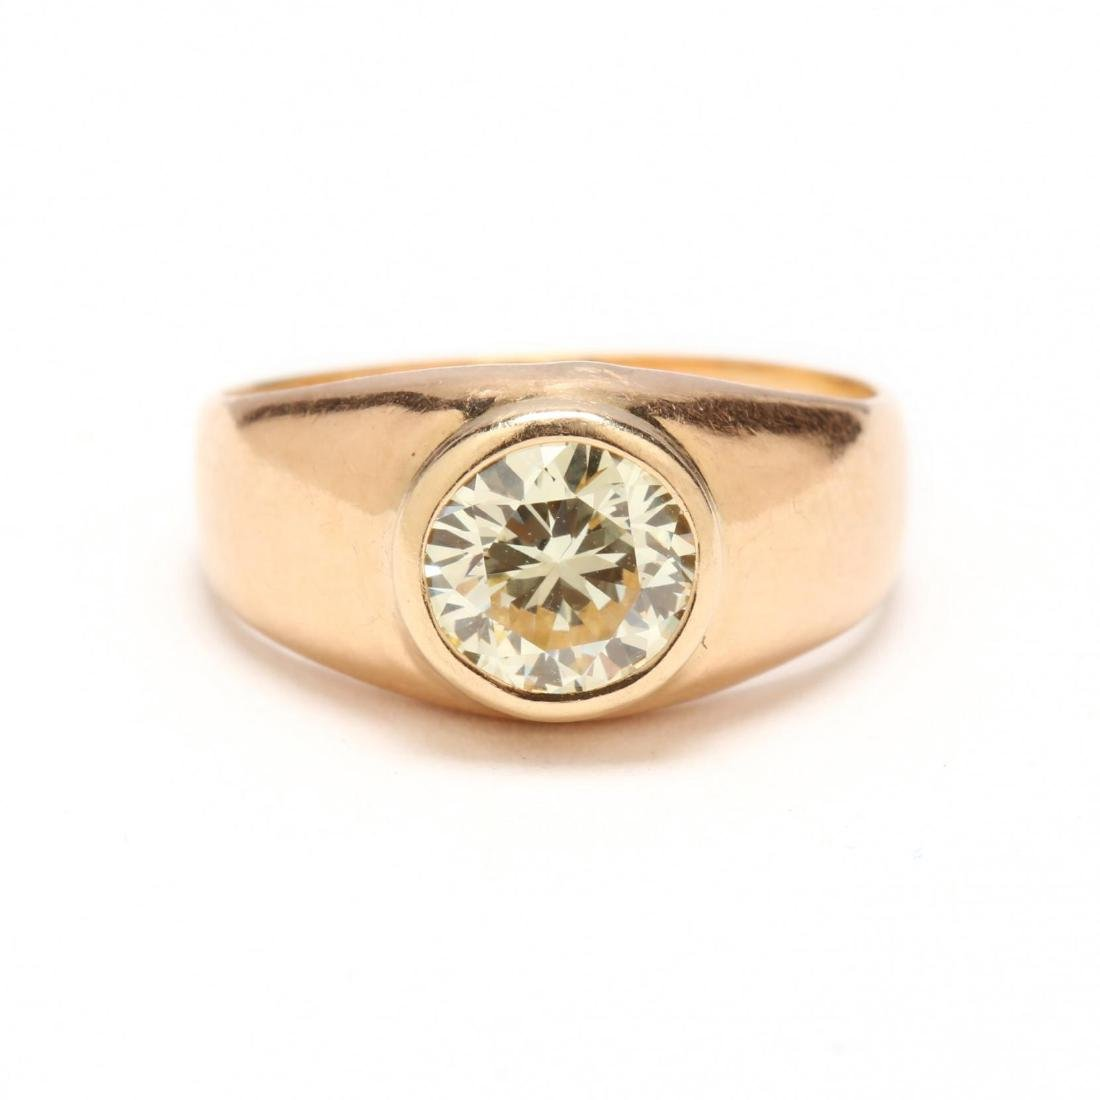 Vintage 14KT Gold and Diamond Ring